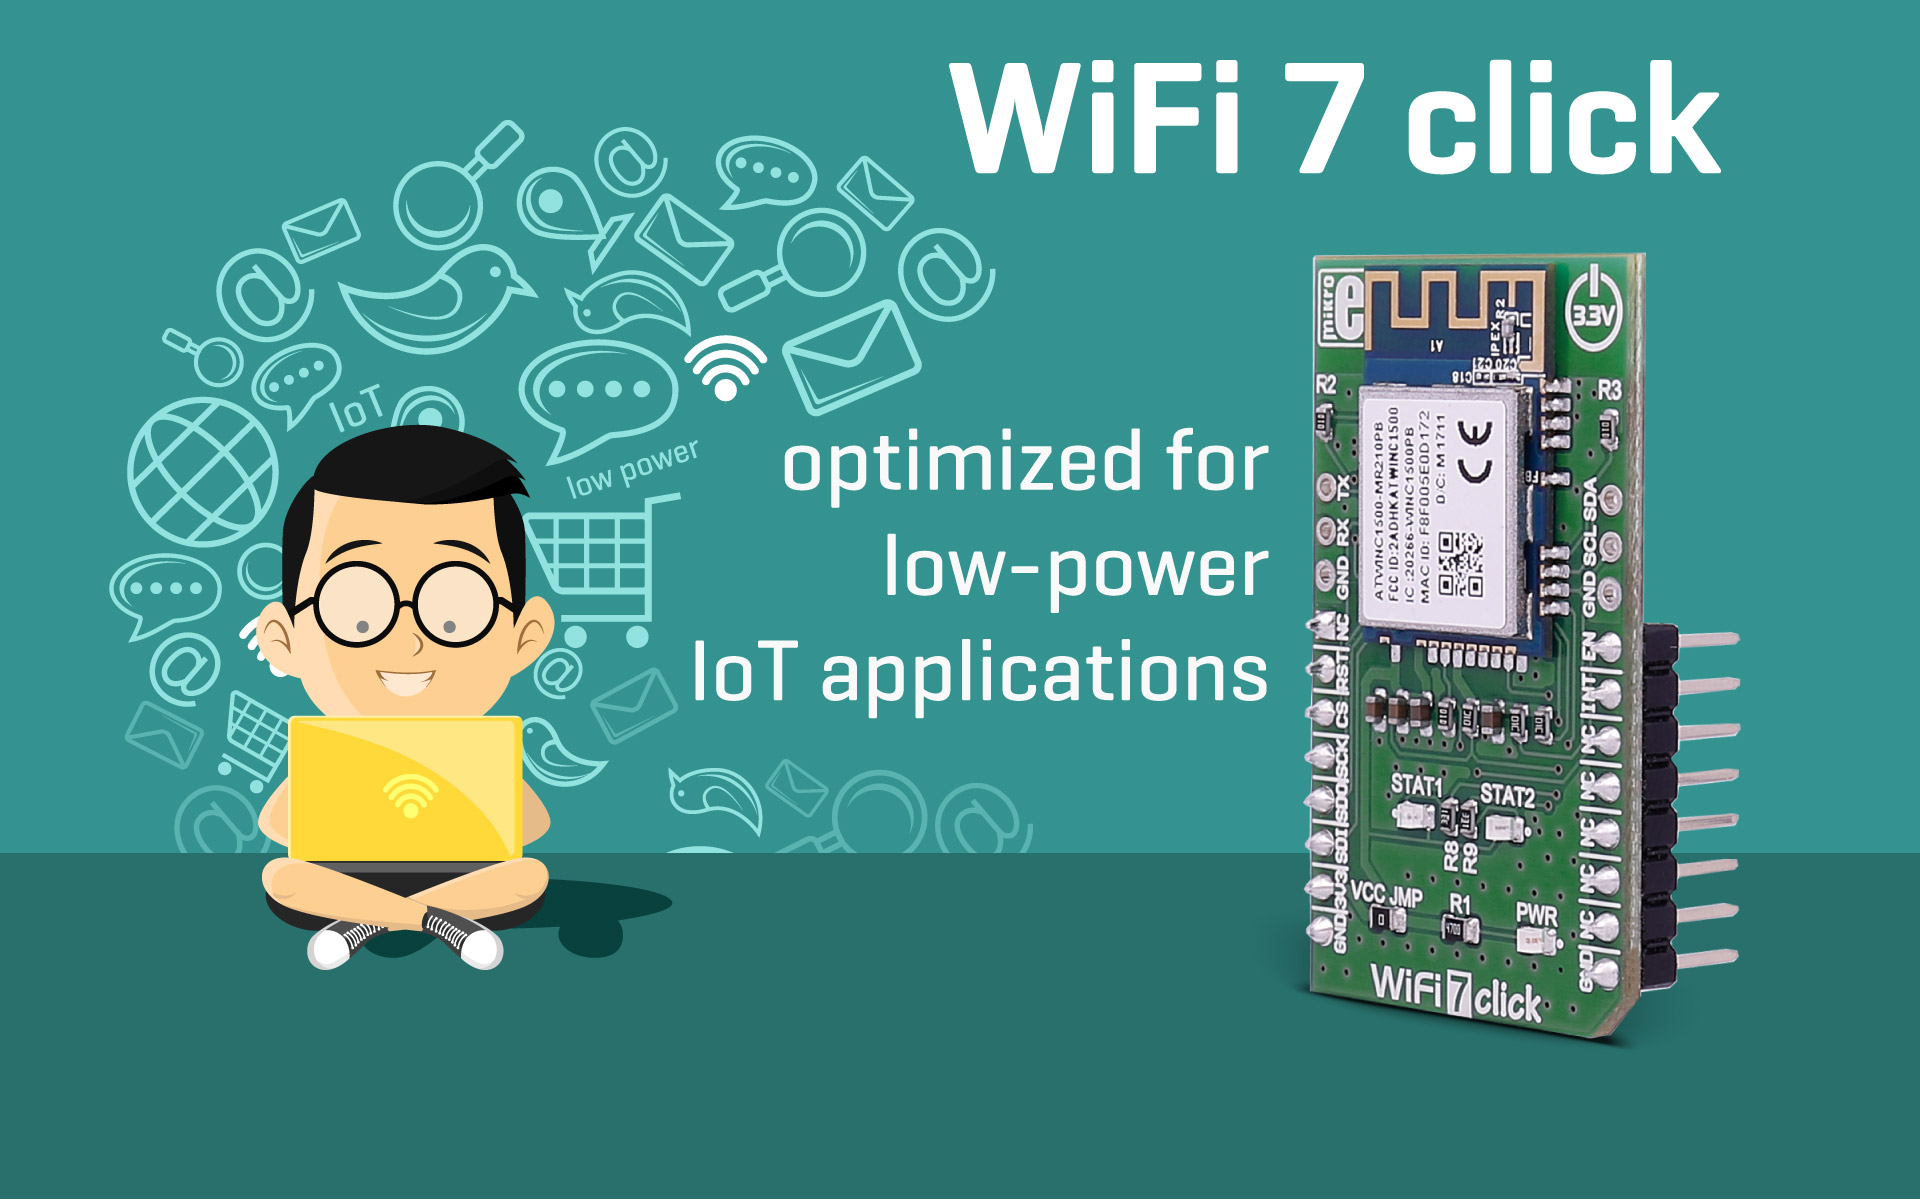 WiFi 7 click — Optimized for low-power IoT applications